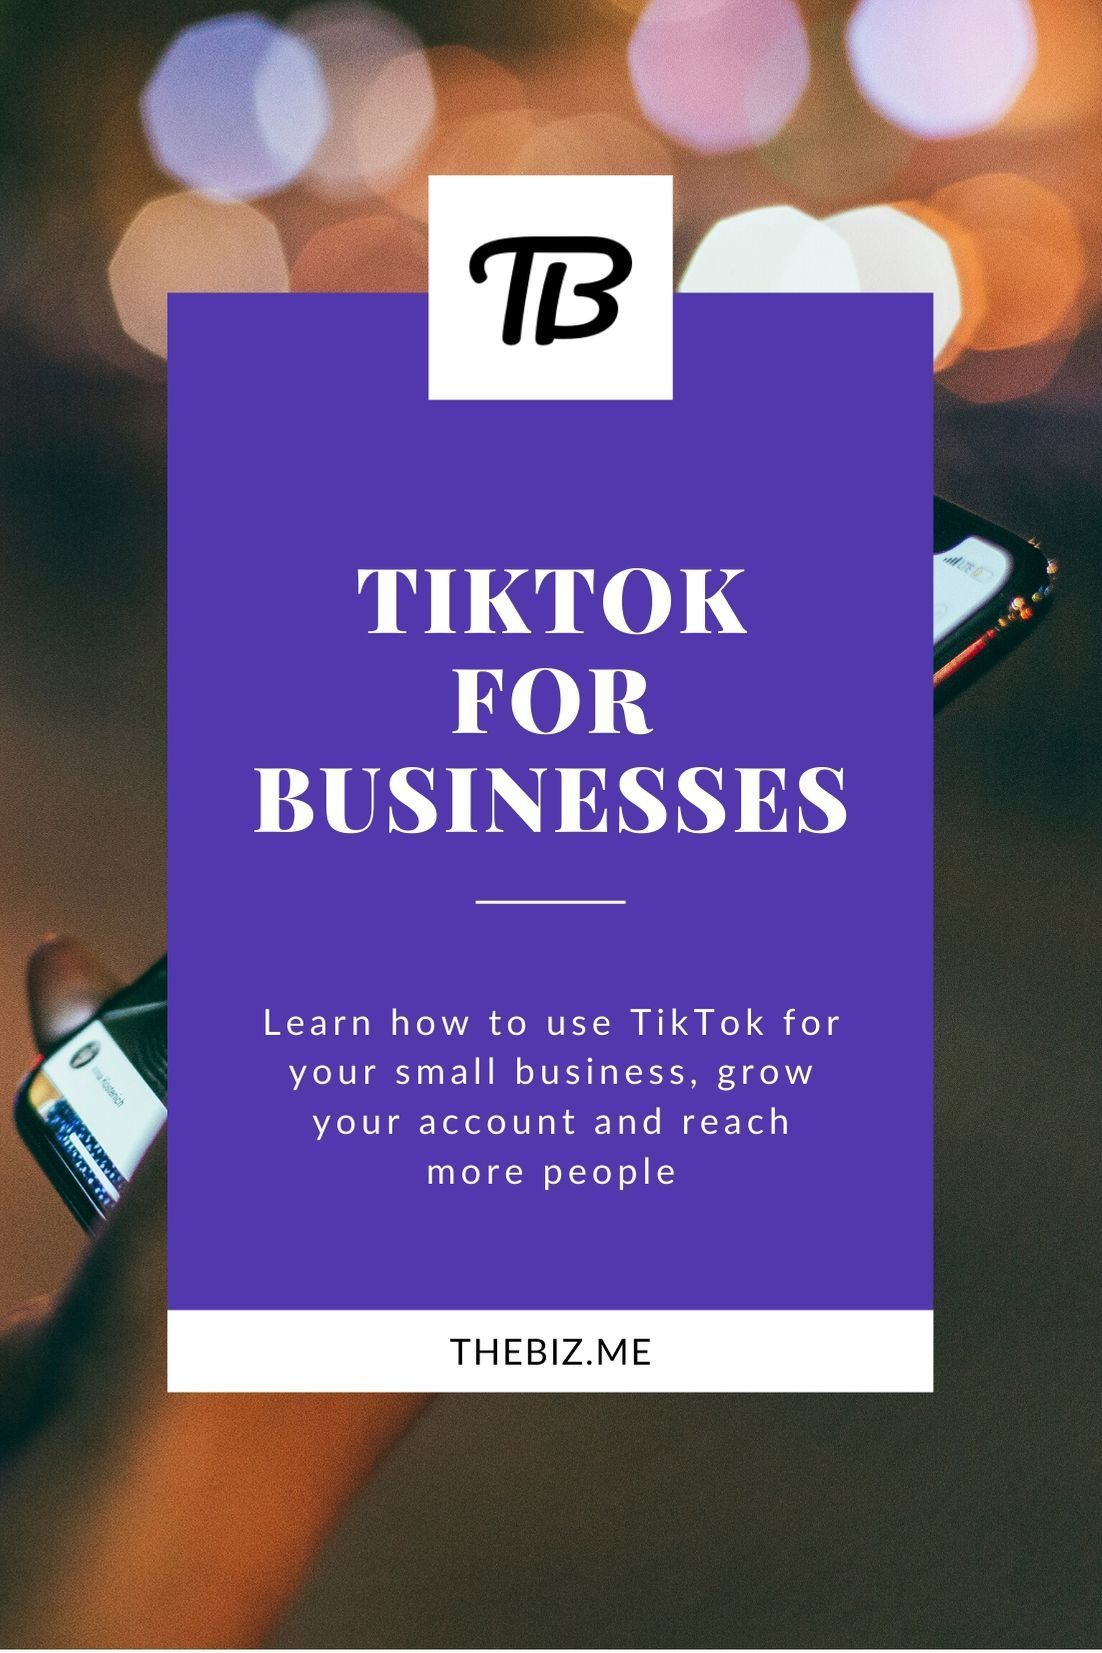 How To Use Tiktok For Business Everything You Need To Know Thebiz Social Media Content Calendar Social Media Planning Digital Marketing